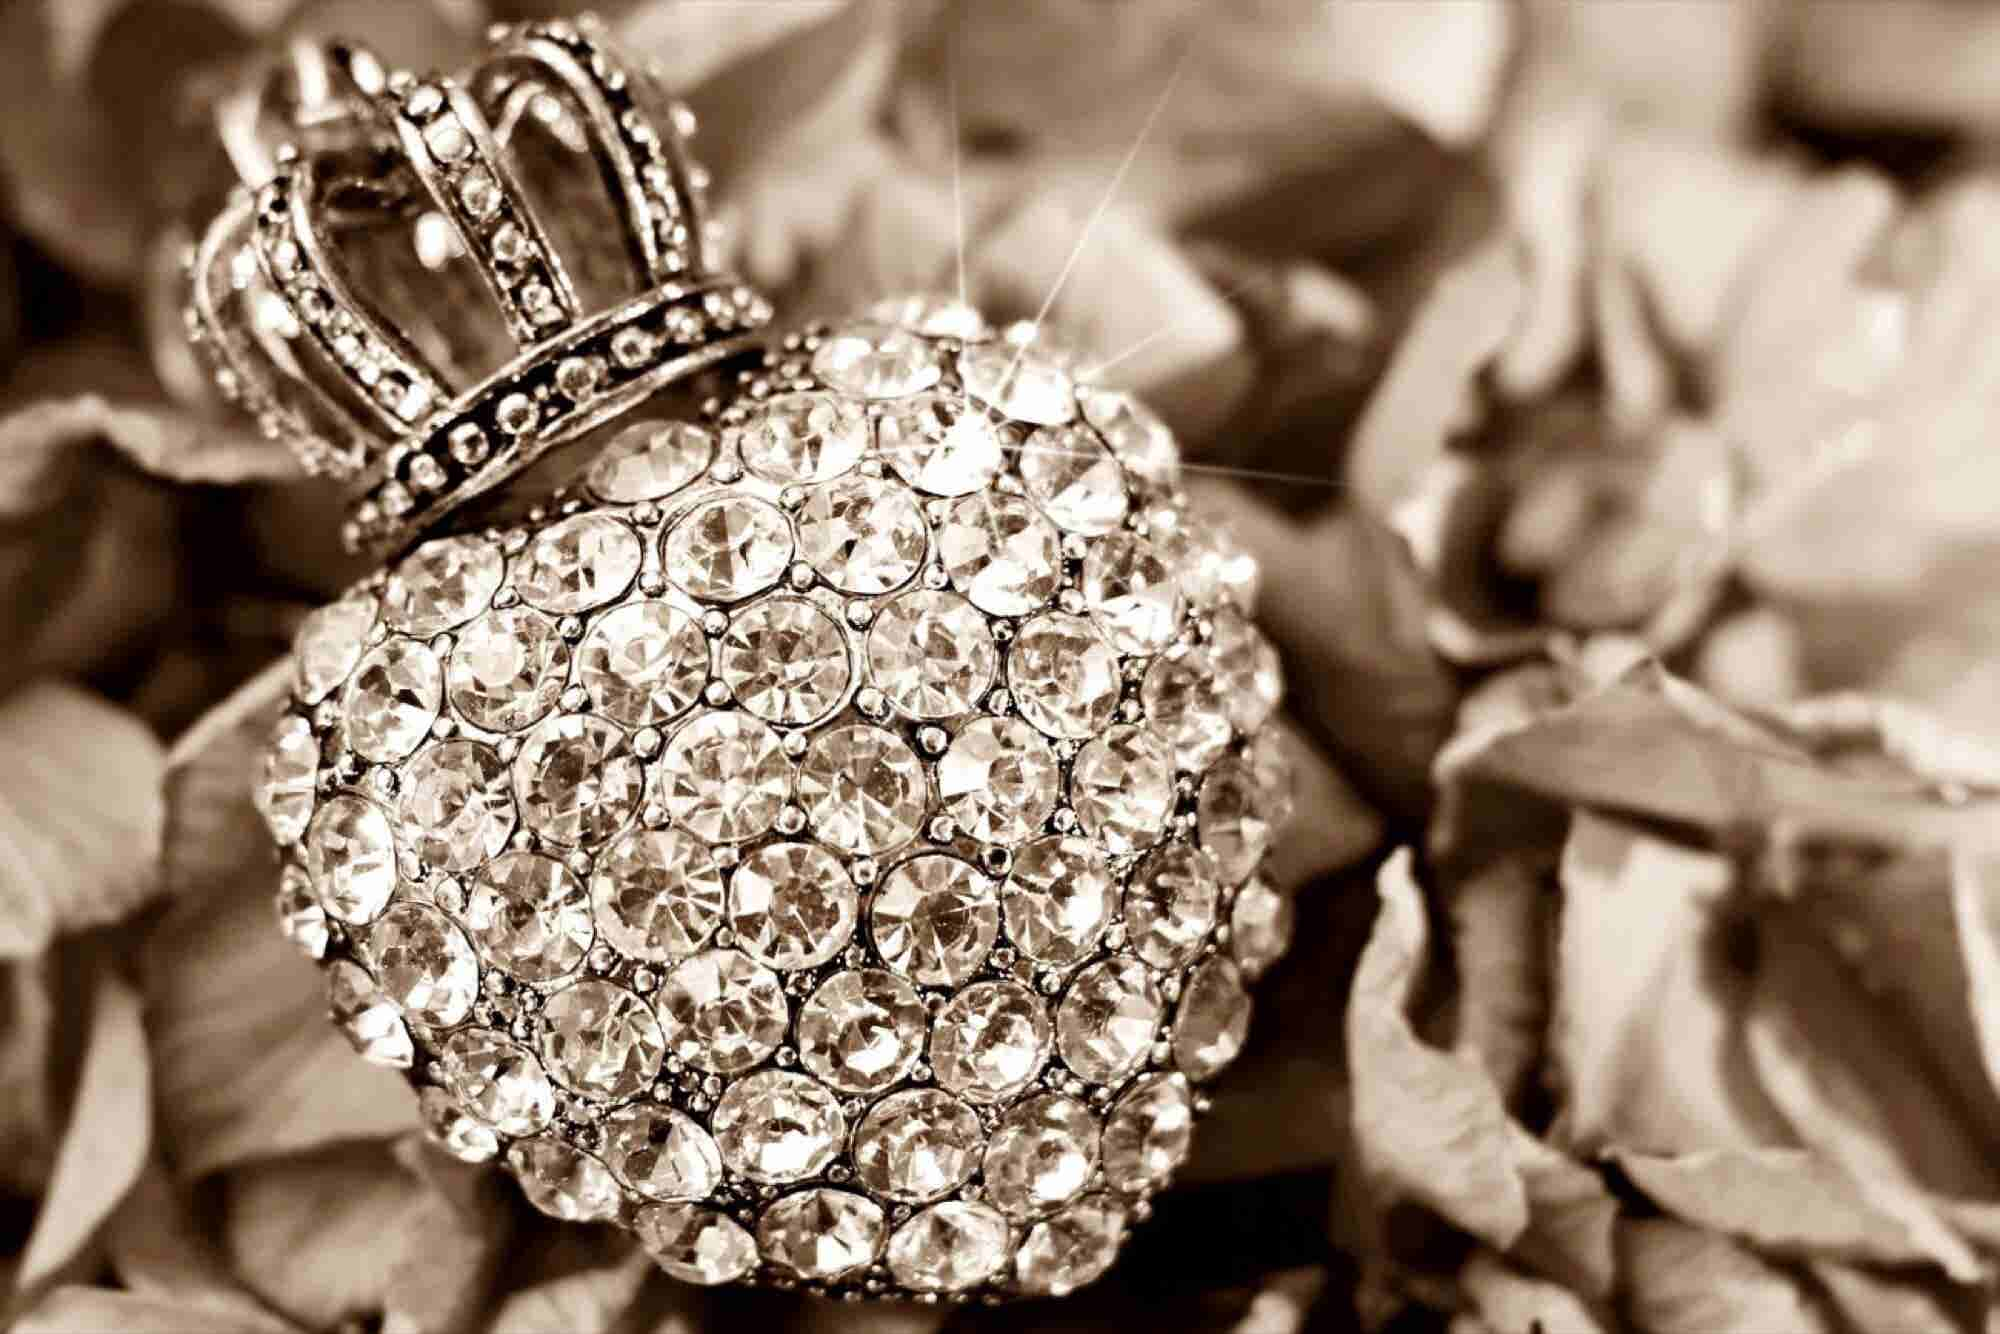 #7 Trends That Will Shape the Jewellery Industry in 2018